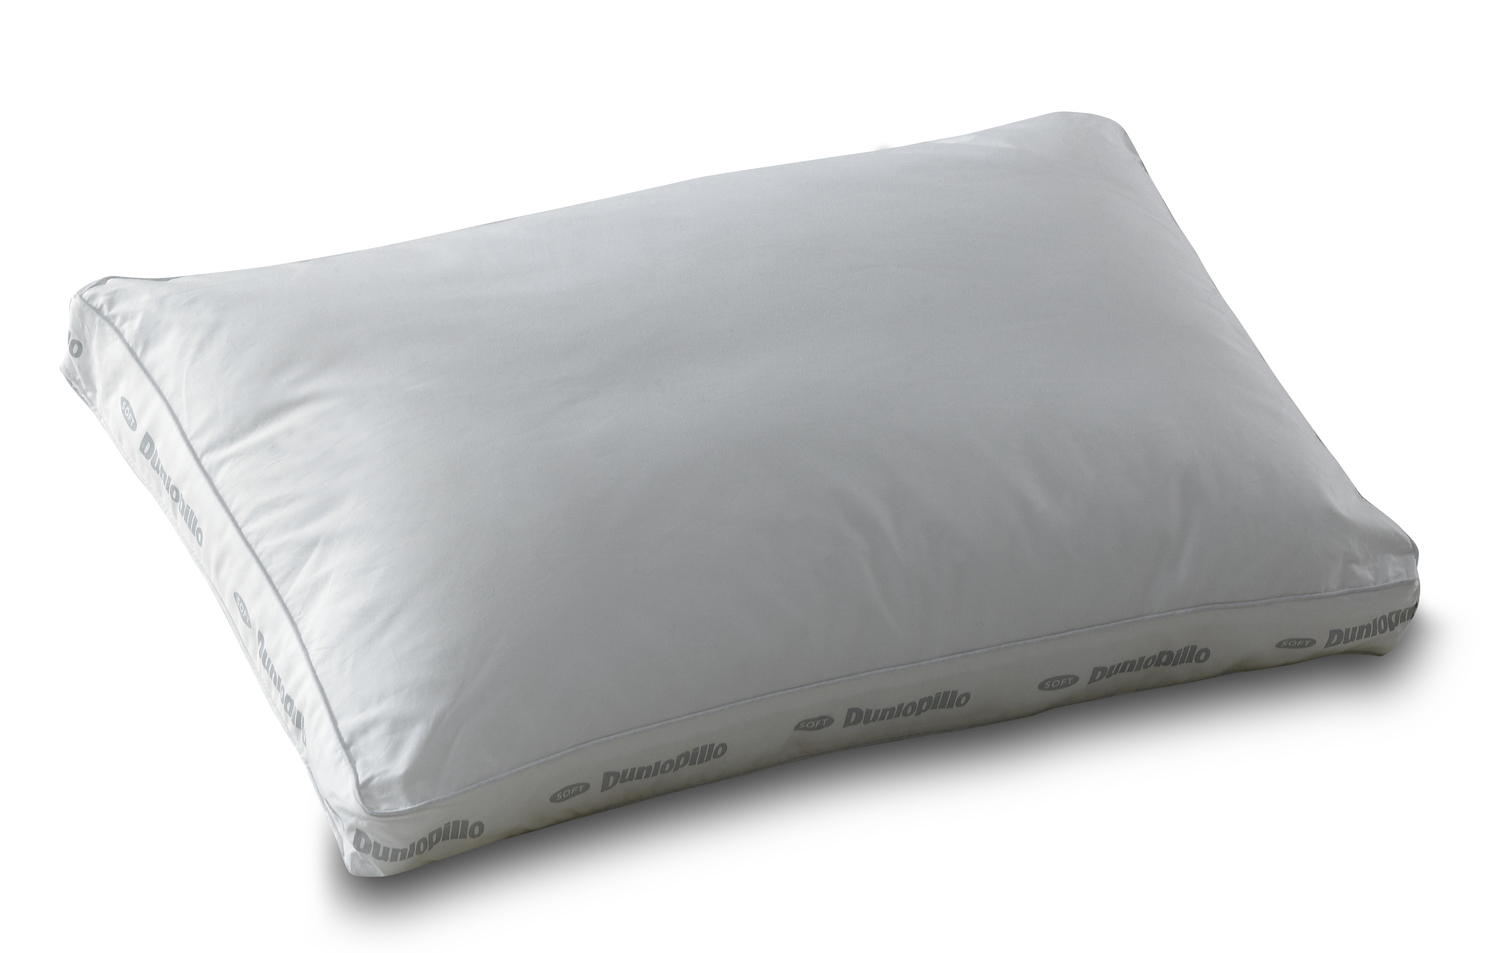 dunlopillo celeste latex layer pillow soft from. Black Bedroom Furniture Sets. Home Design Ideas